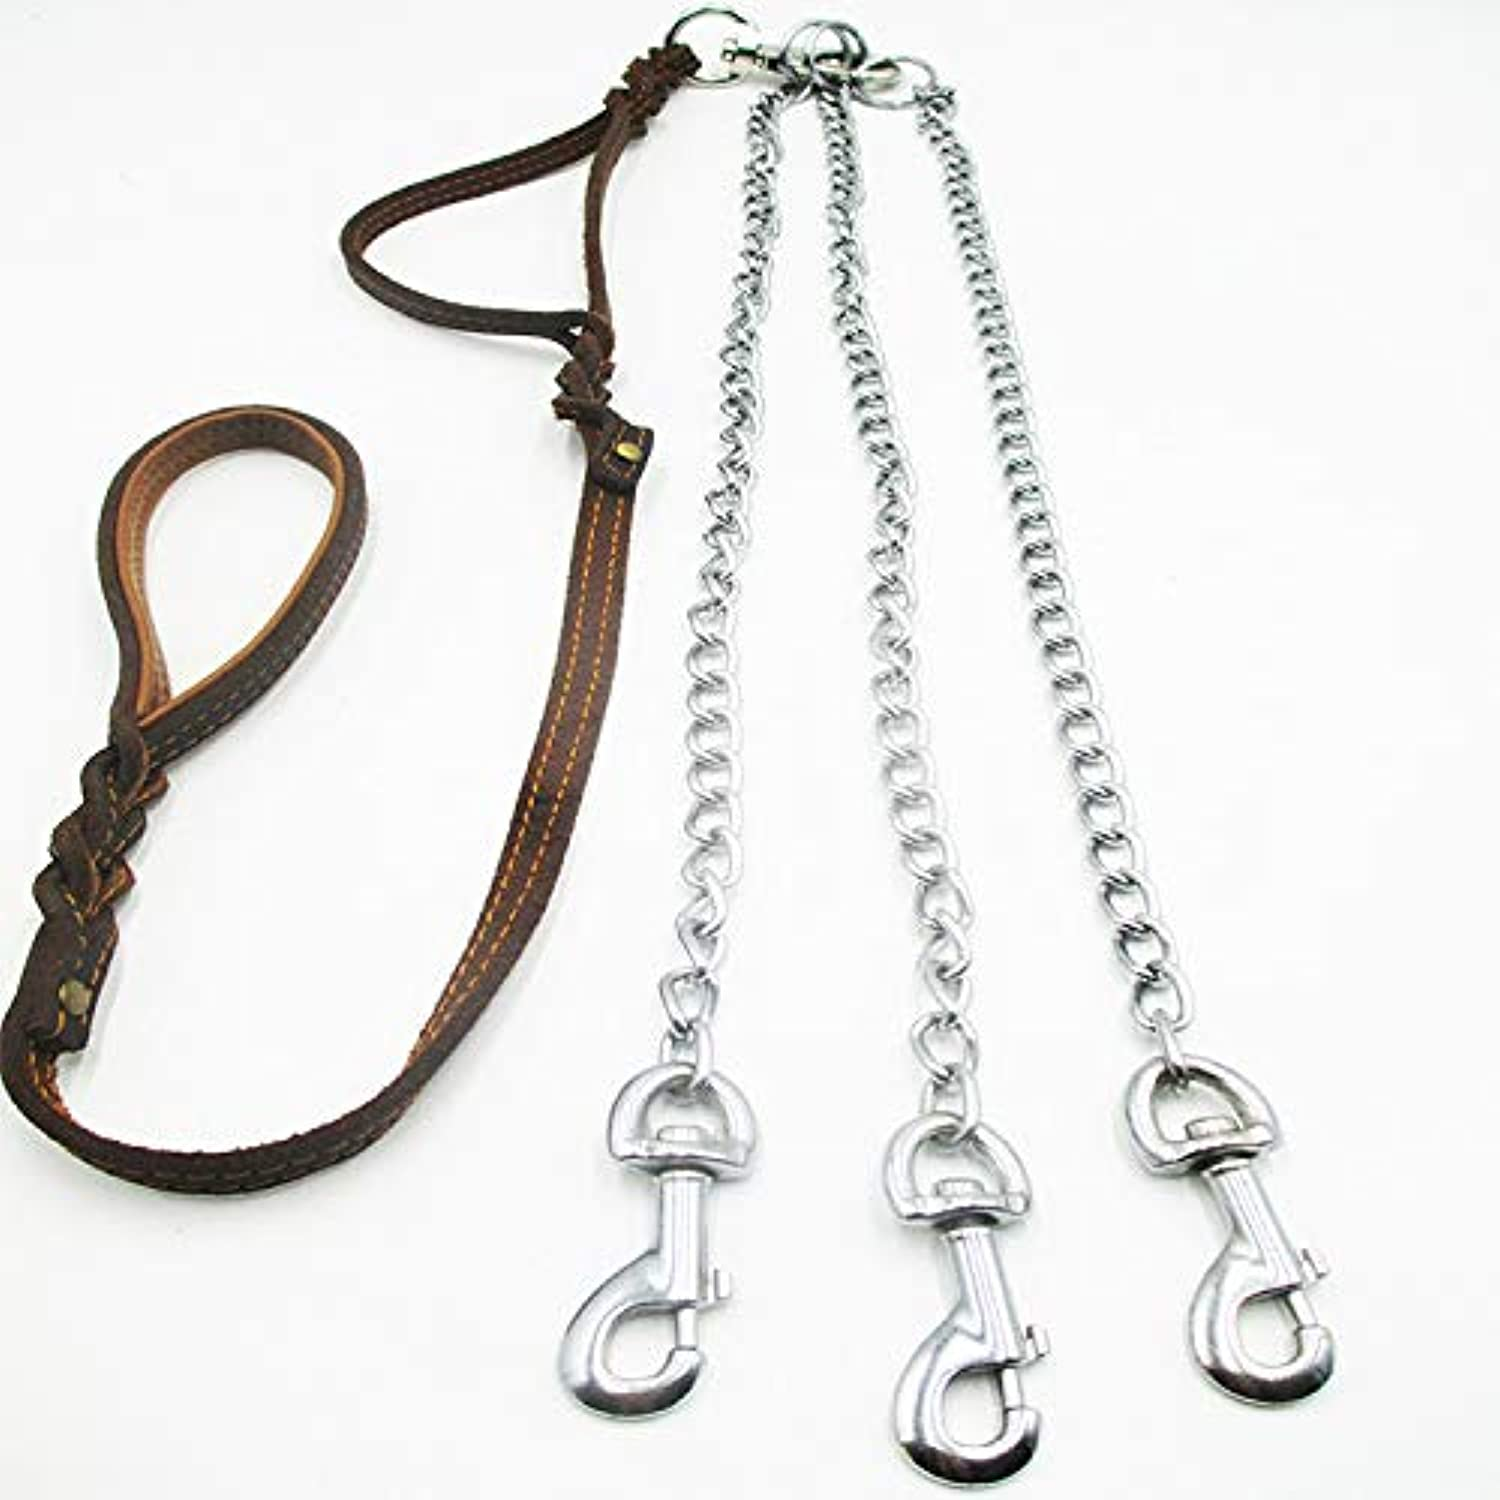 Hhxx9 MediumSized and LargeSized Dogs with TwoHandled Traction Rope, Suture, Cowhide, Multiple Dogs, MediumSized and LargeSized Dogs,One Pull